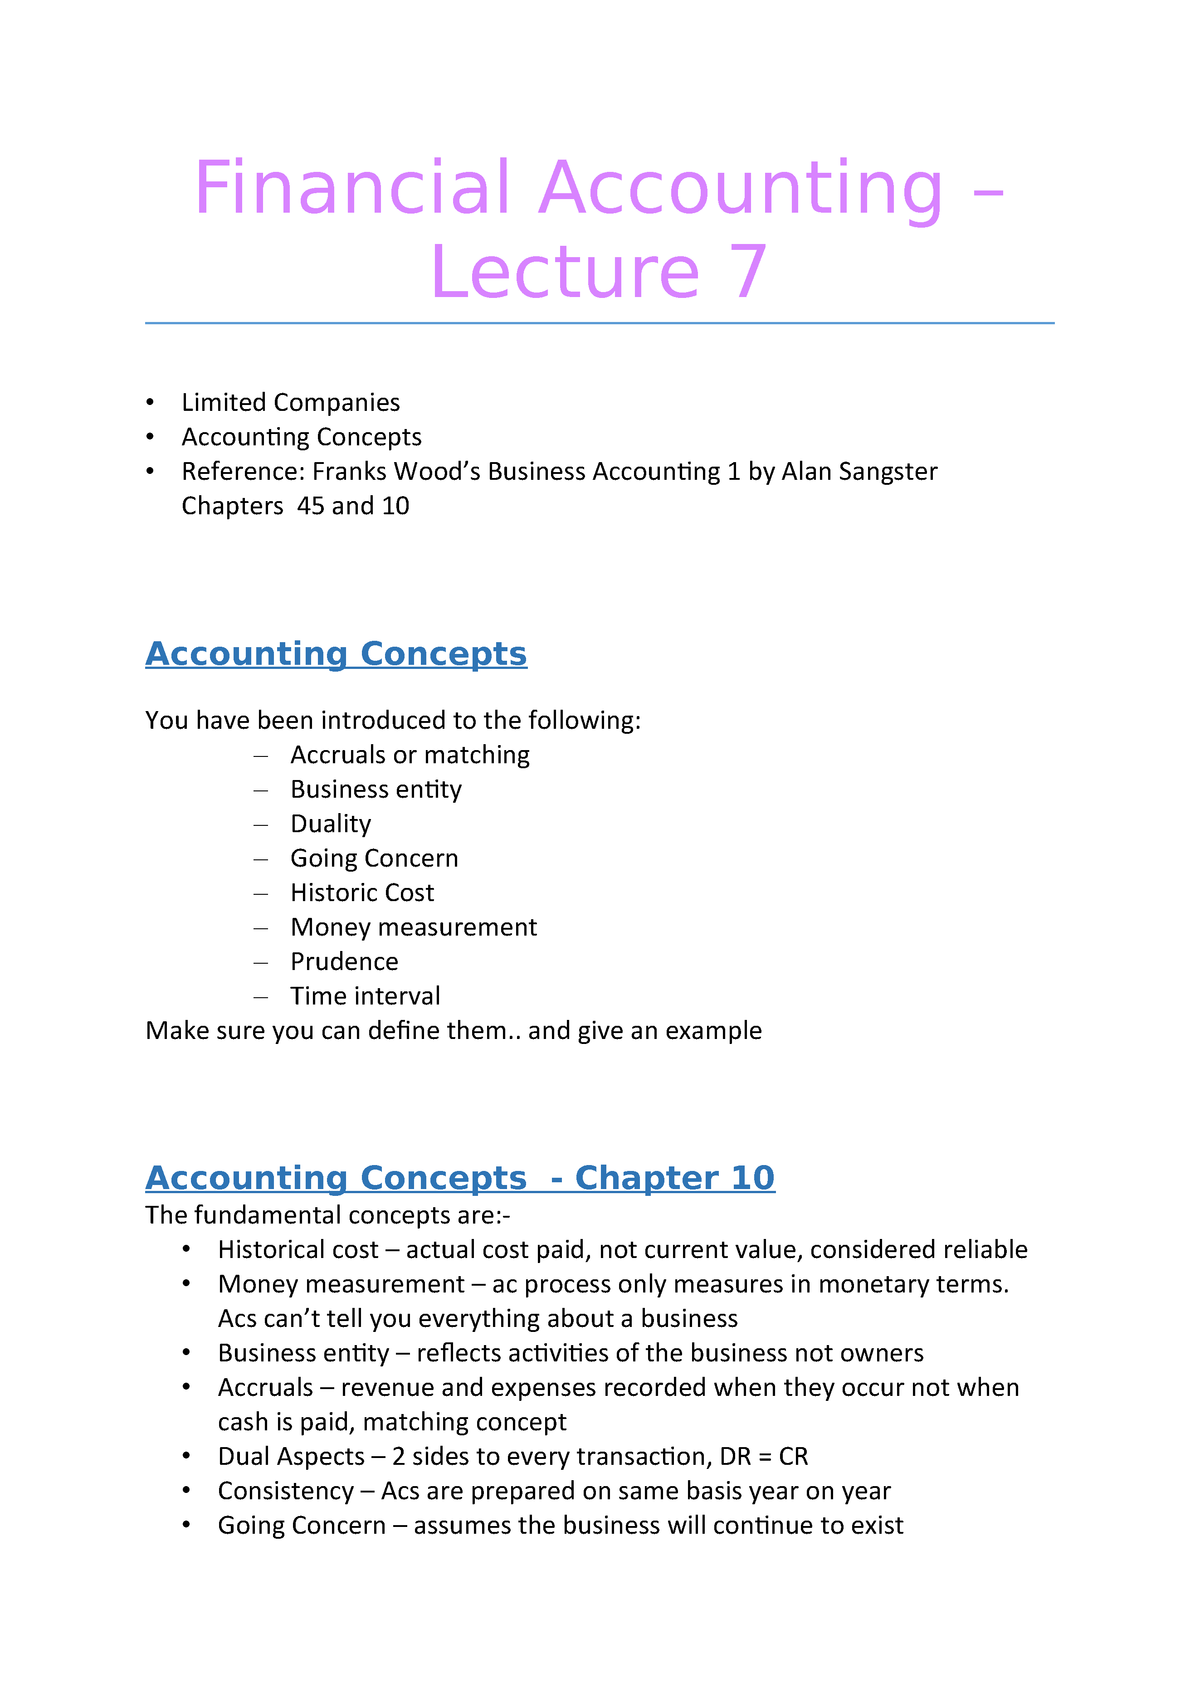 Notes, Financial Accounting – Lecture 7 - BS1111 - RGU - StuDocu